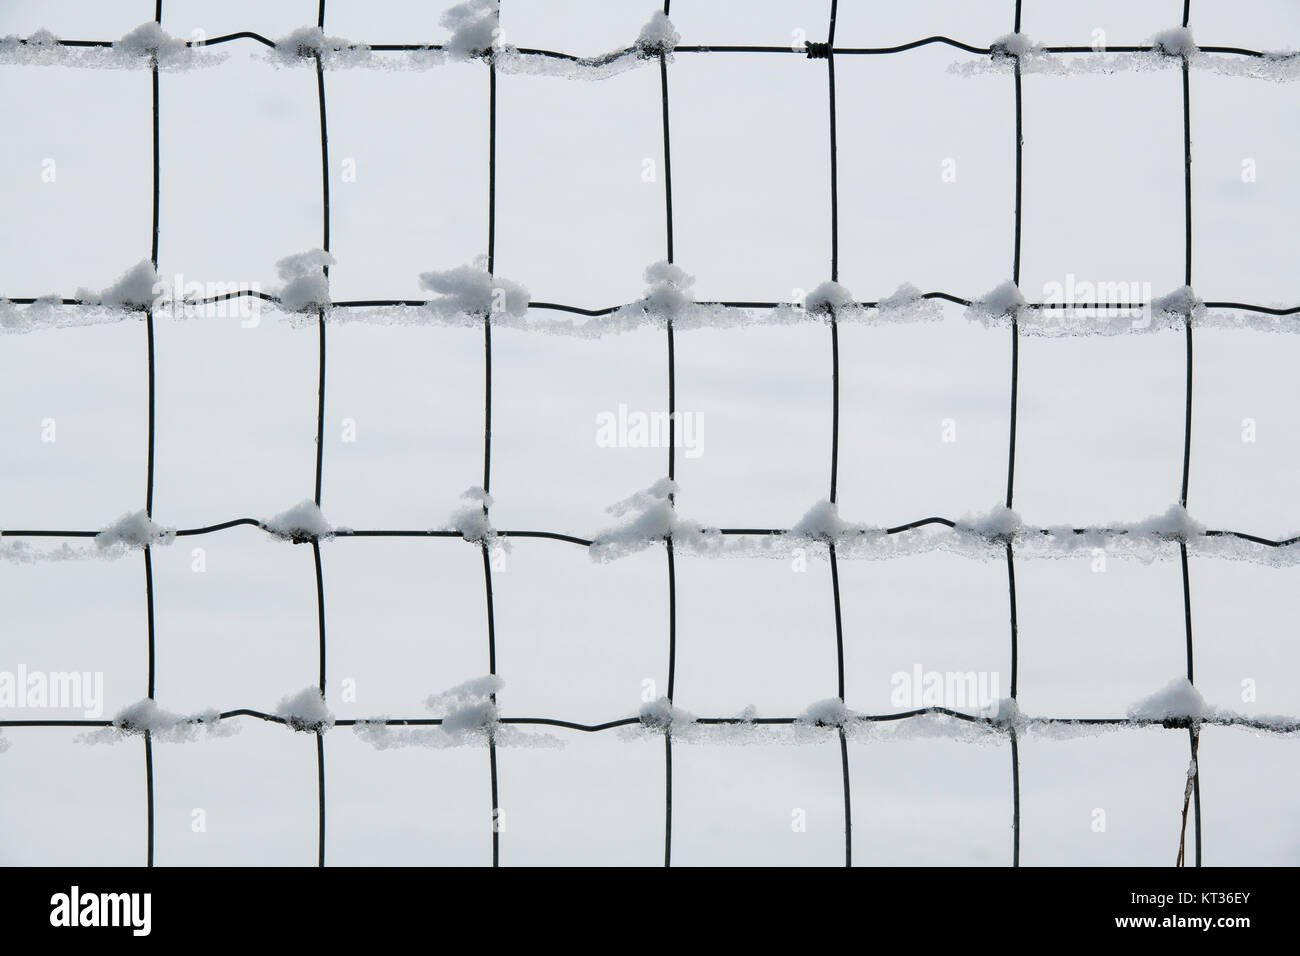 Snow on a wire fence in the Cotswolds. UK. Abstract pattern - Stock Image